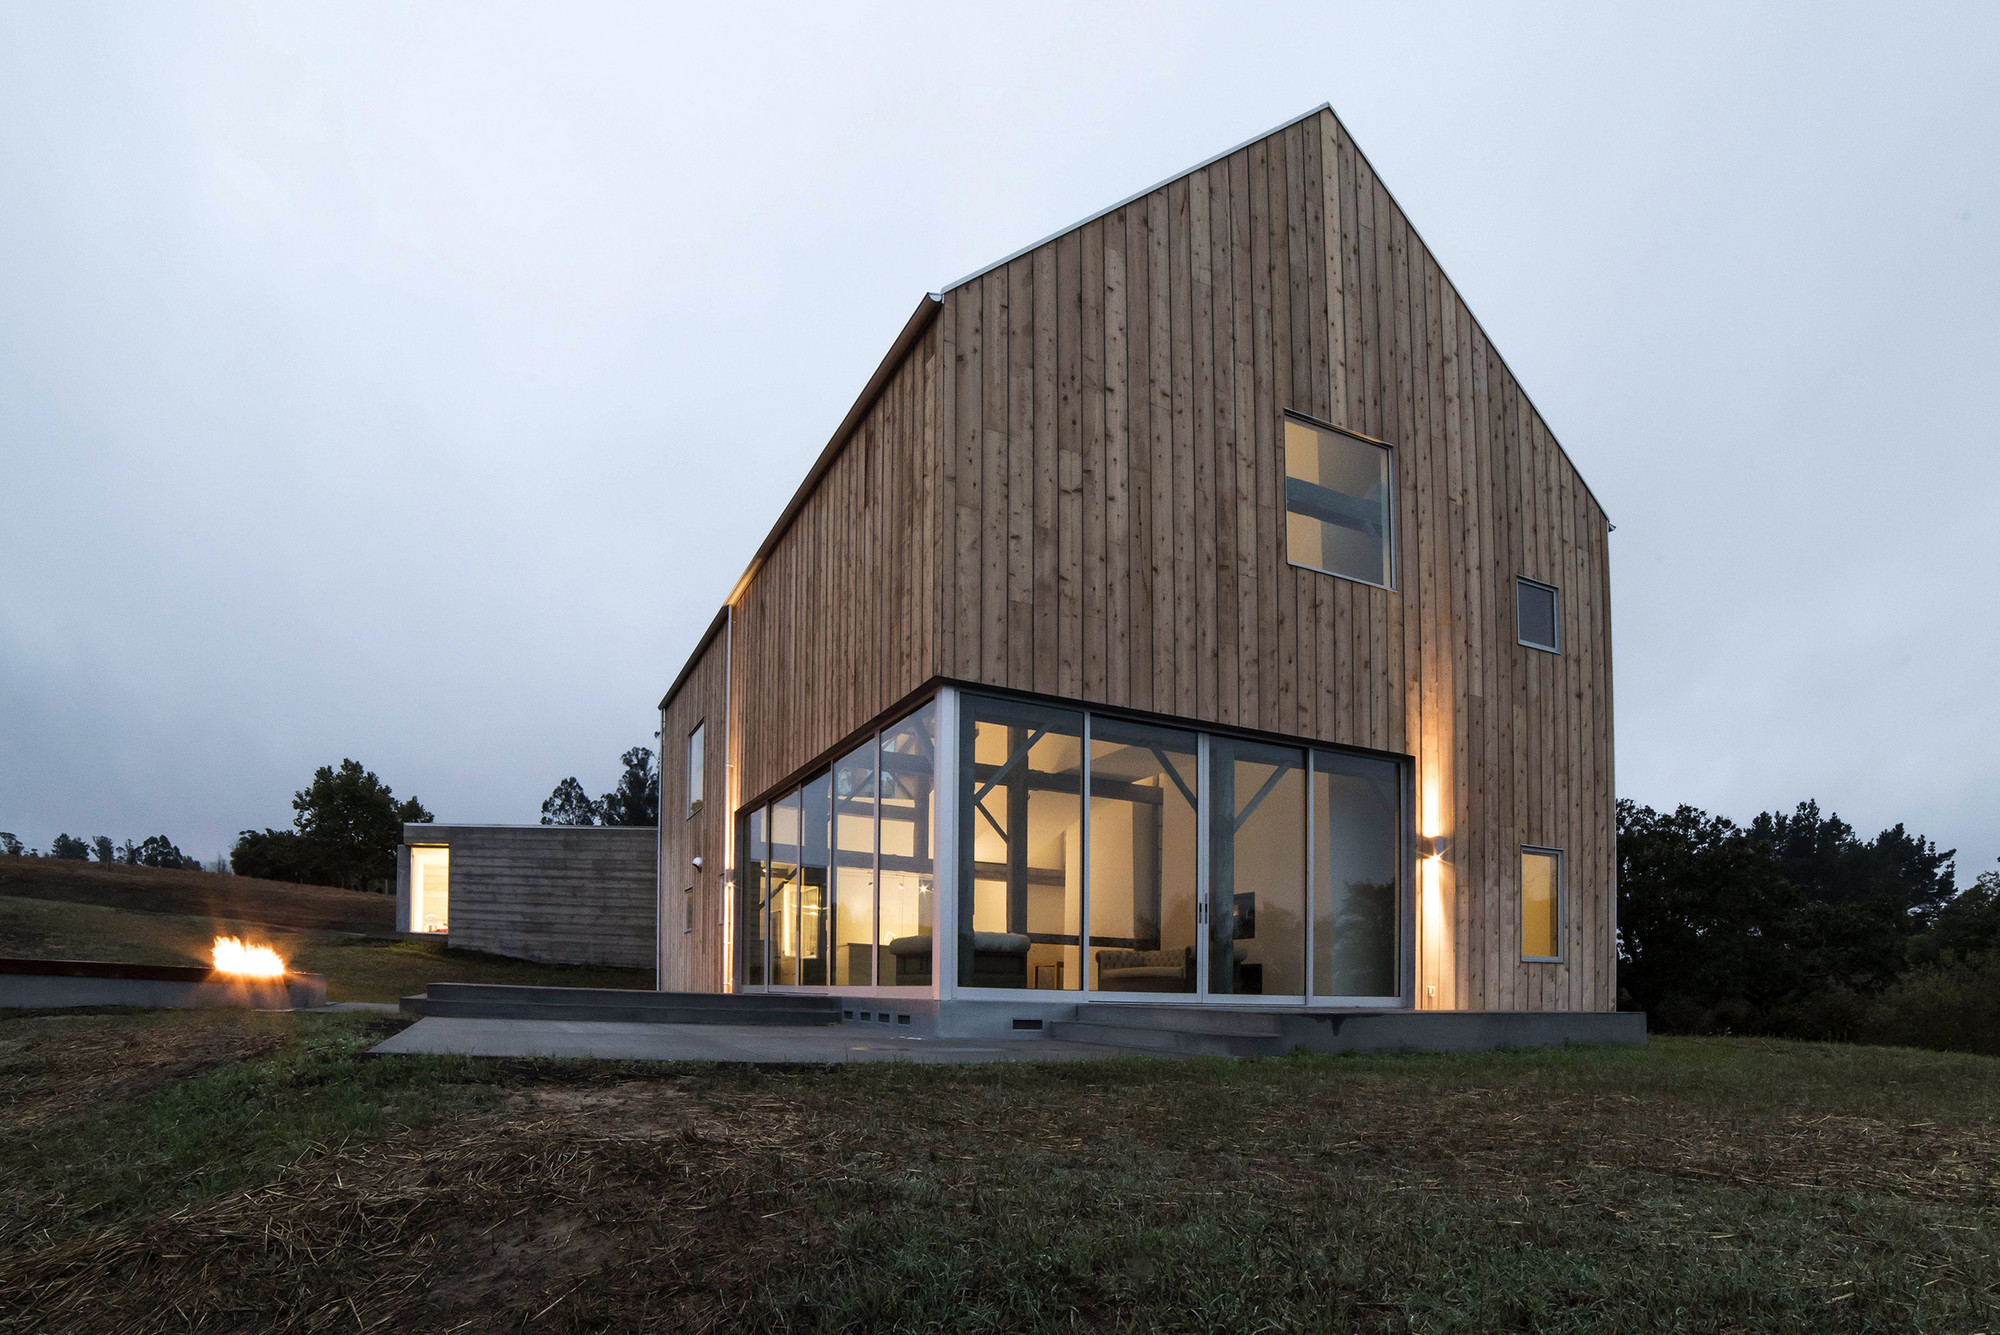 Sebastopol barn house anderson anderson architecture archdaily - Barn house decor ...